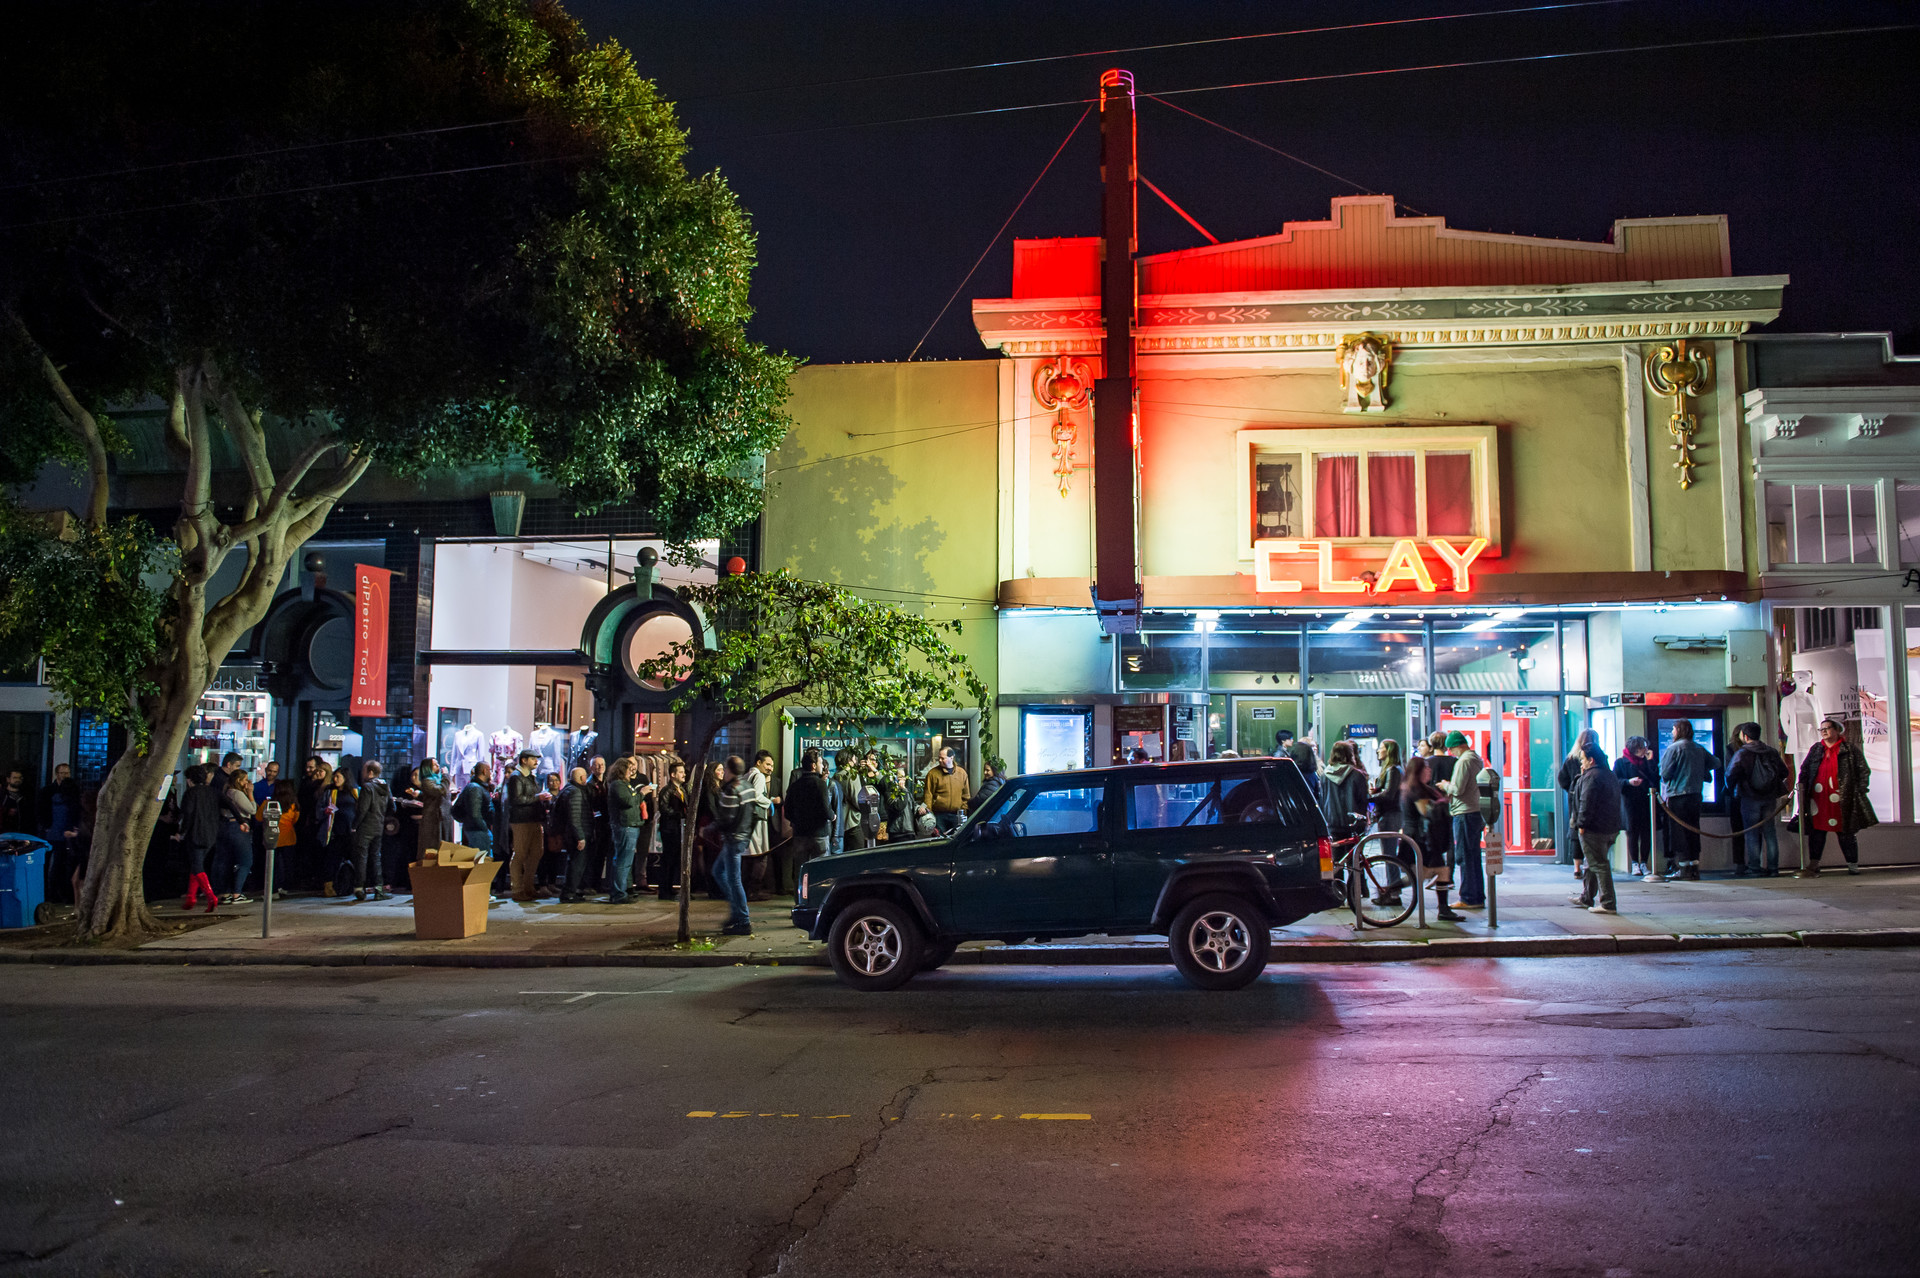 Last Picture Show: Historic SF Theater Plays its Final Midnight Movie